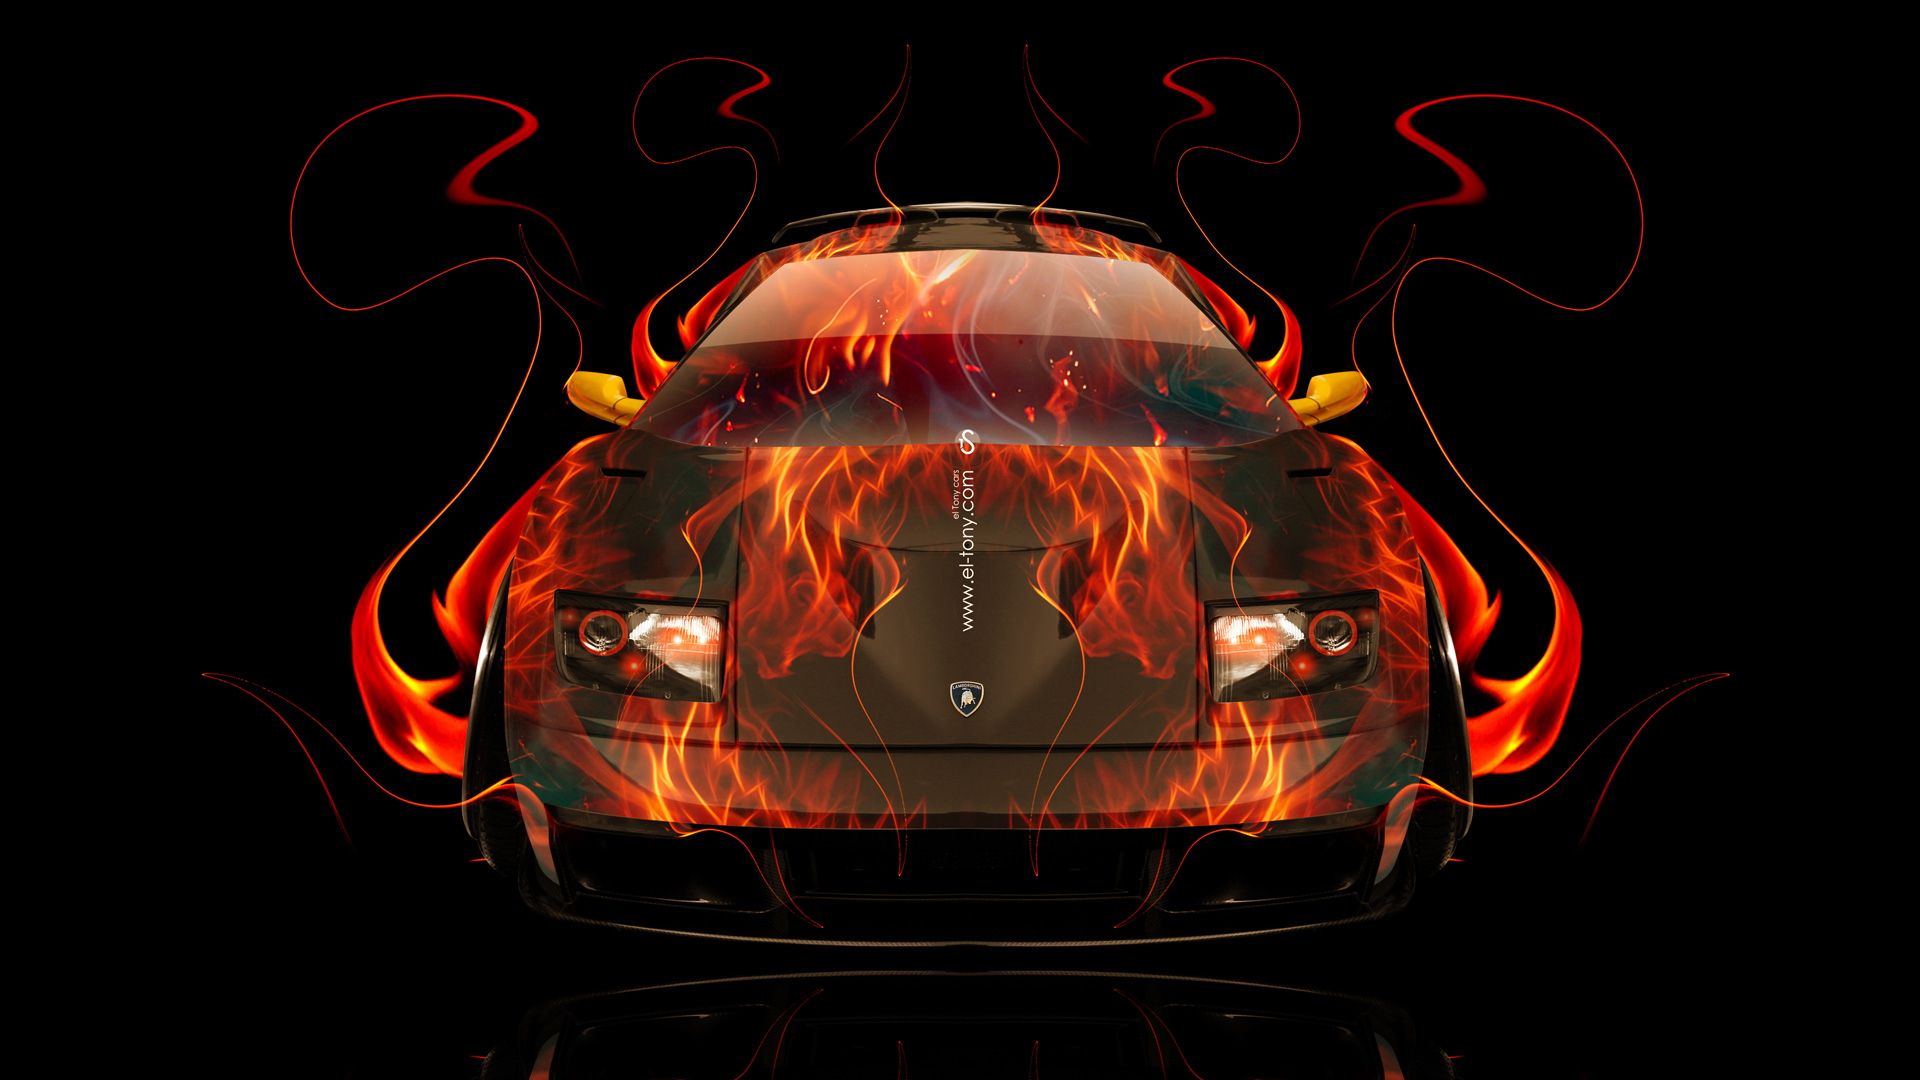 Merveilleux Lamborghini Diablo FrontUp Fire Abstract Car 2014 HD